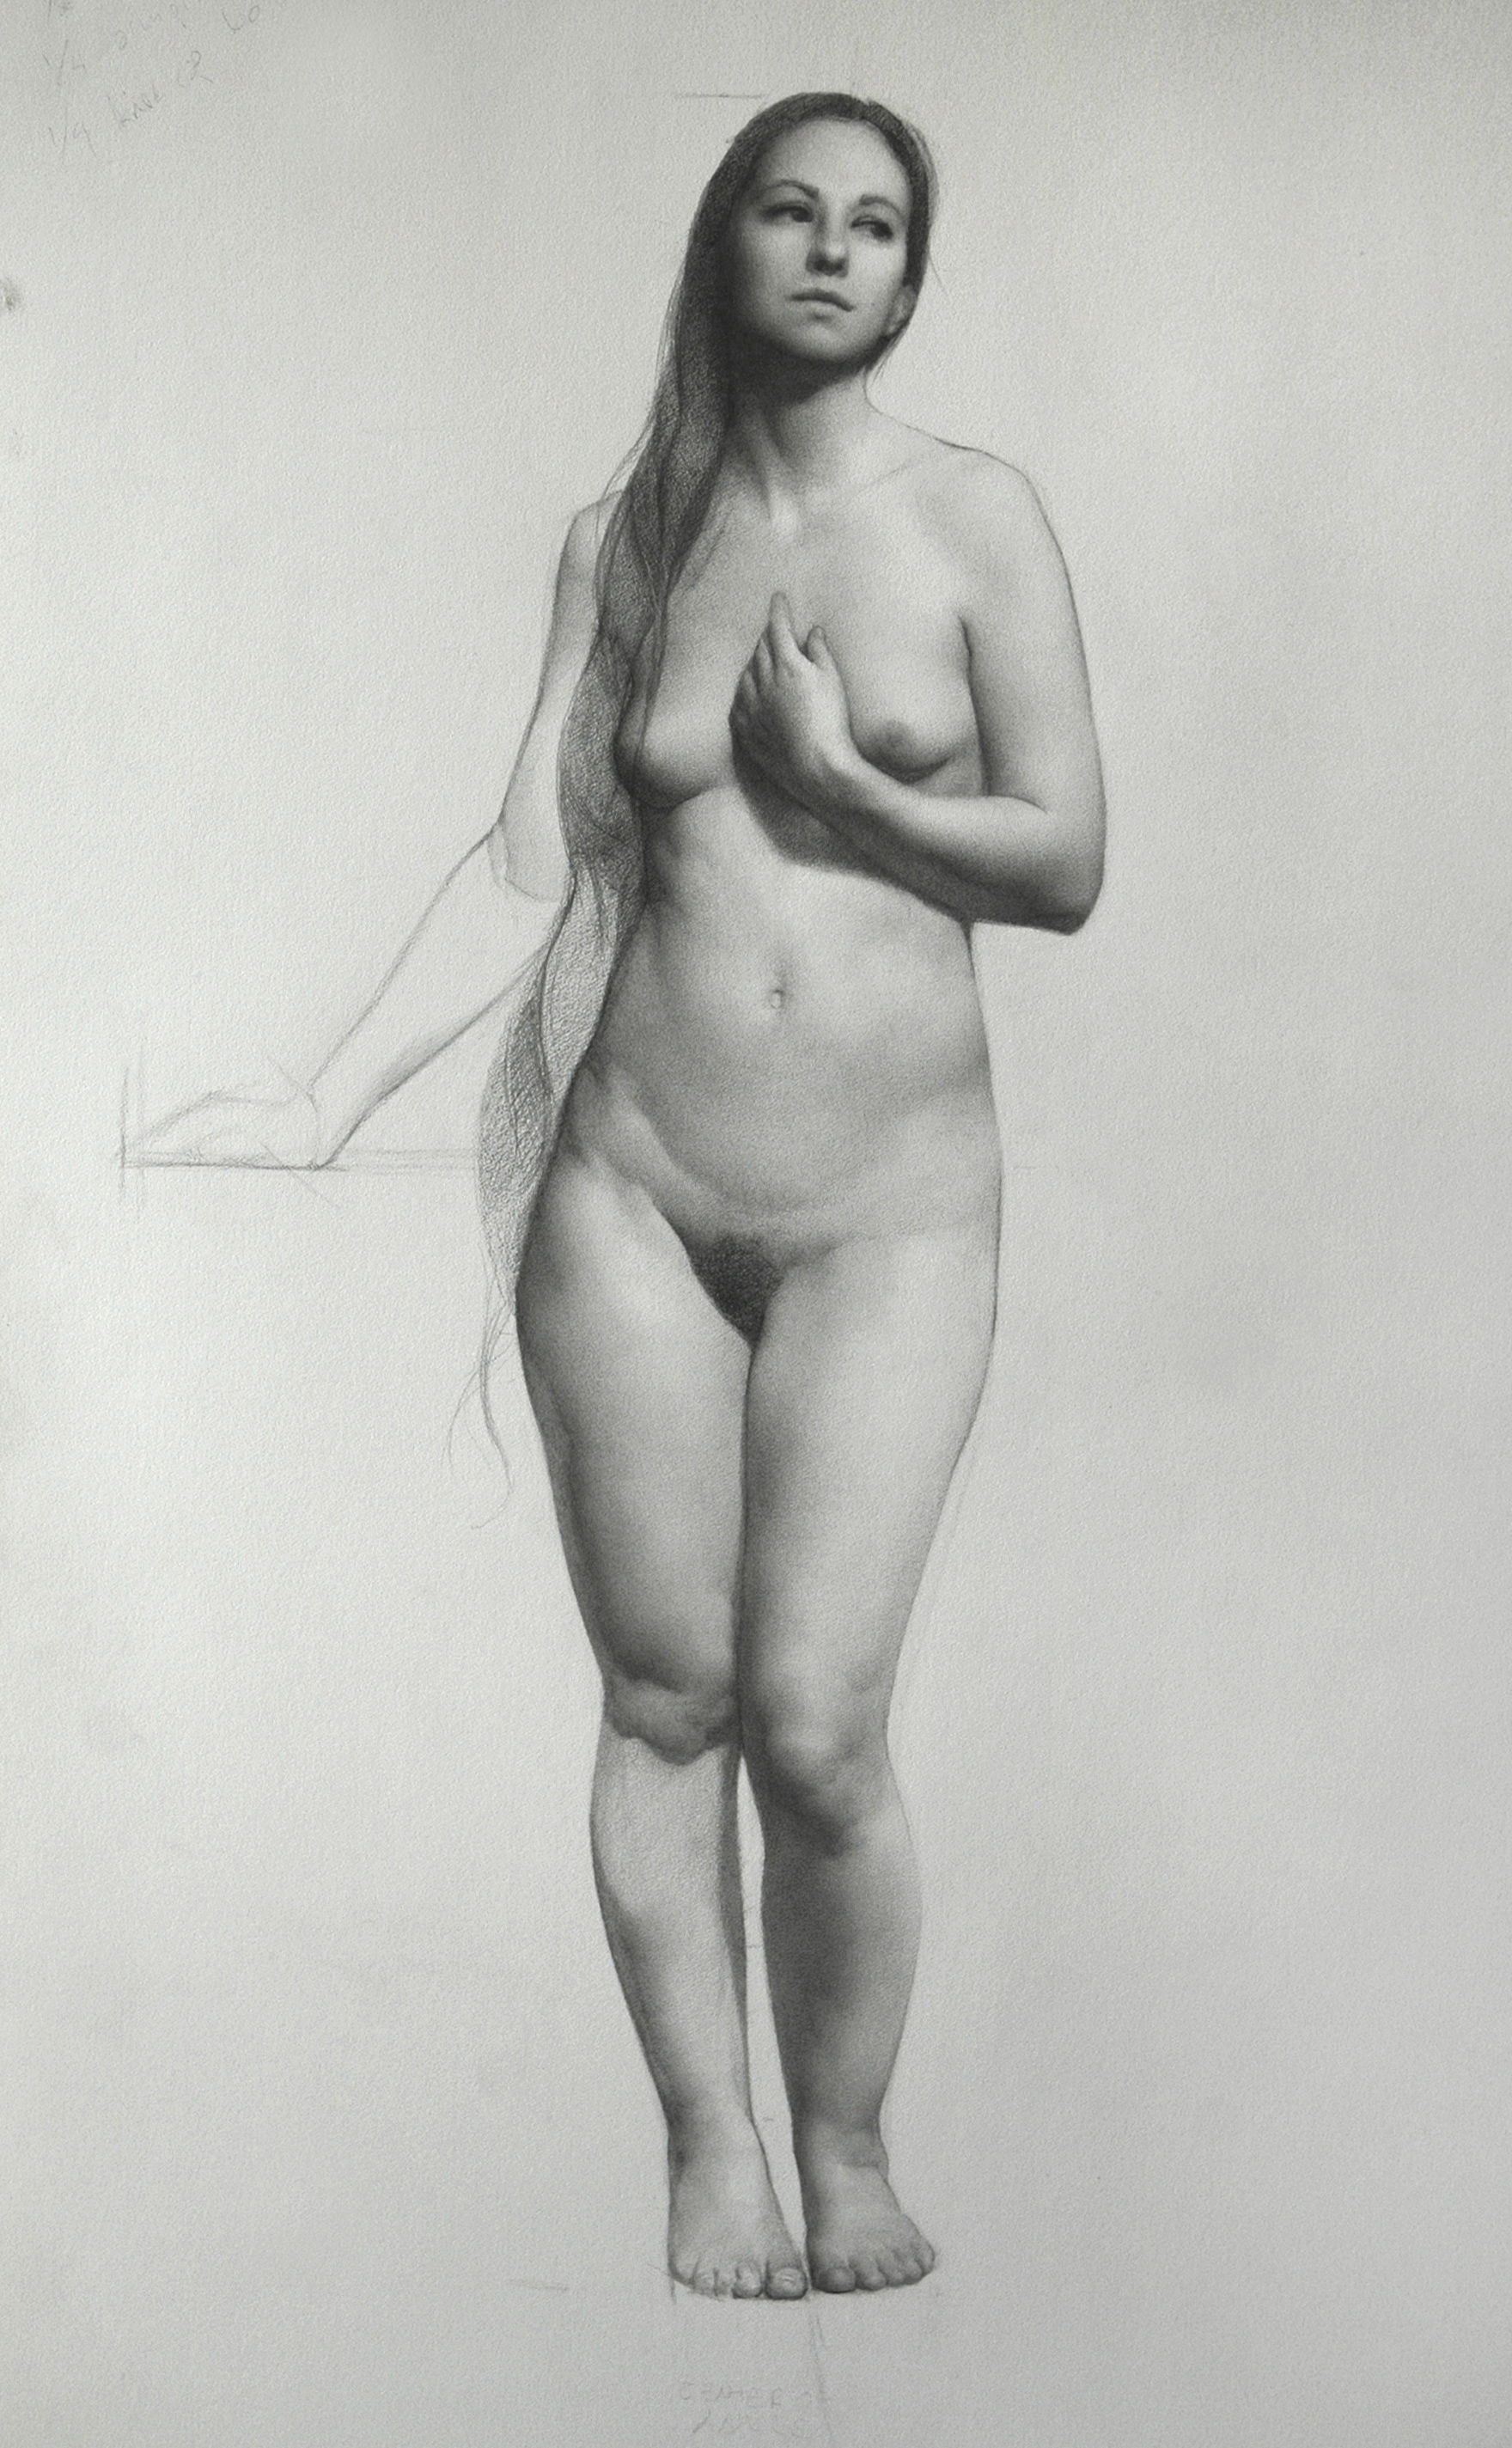 Life drawing artists and nude models tap into creativity